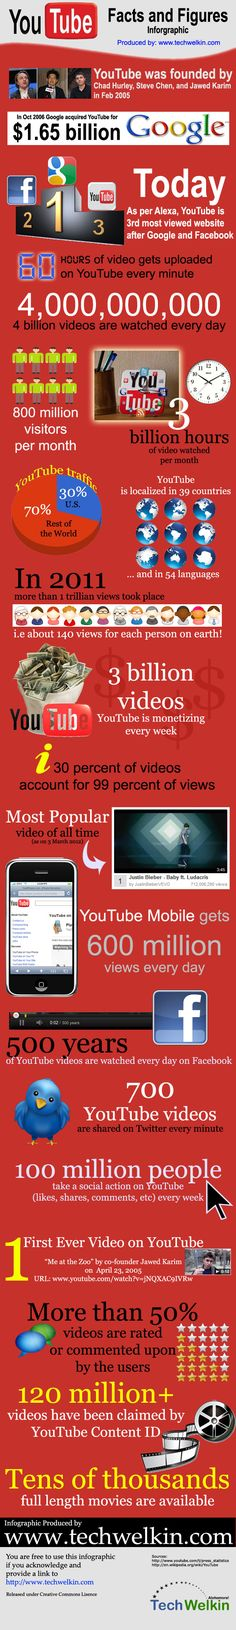 Infographic: YouTube's Mind Numbing Figures